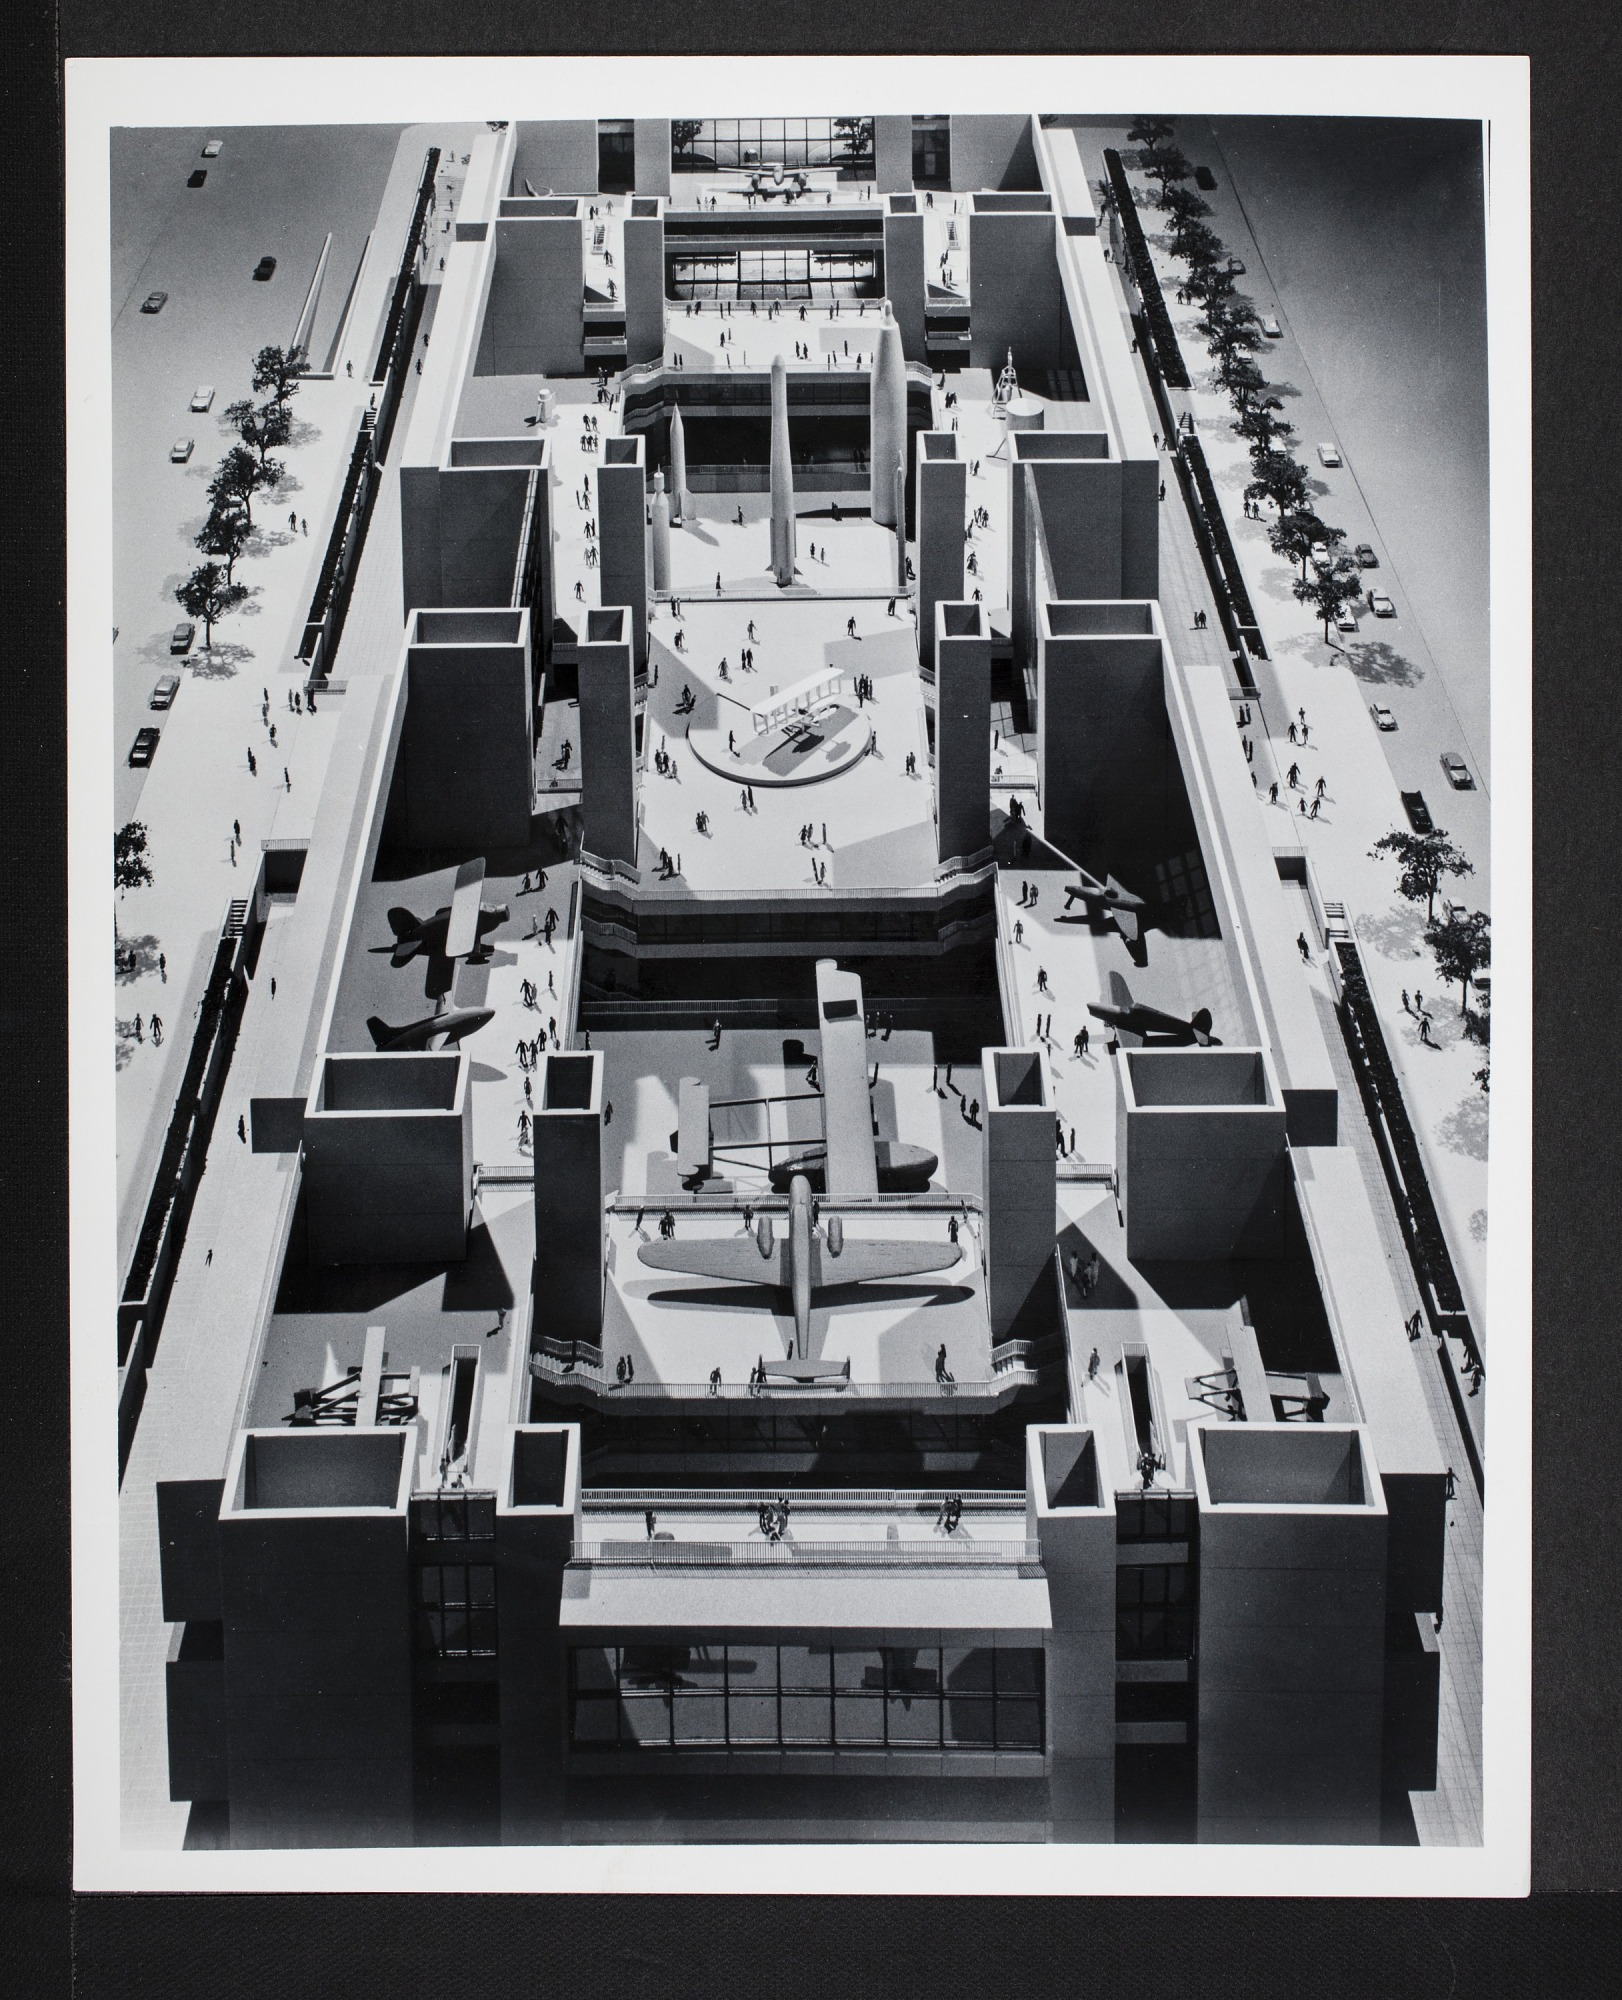 Concept Model of Interior for the New National Air Museum